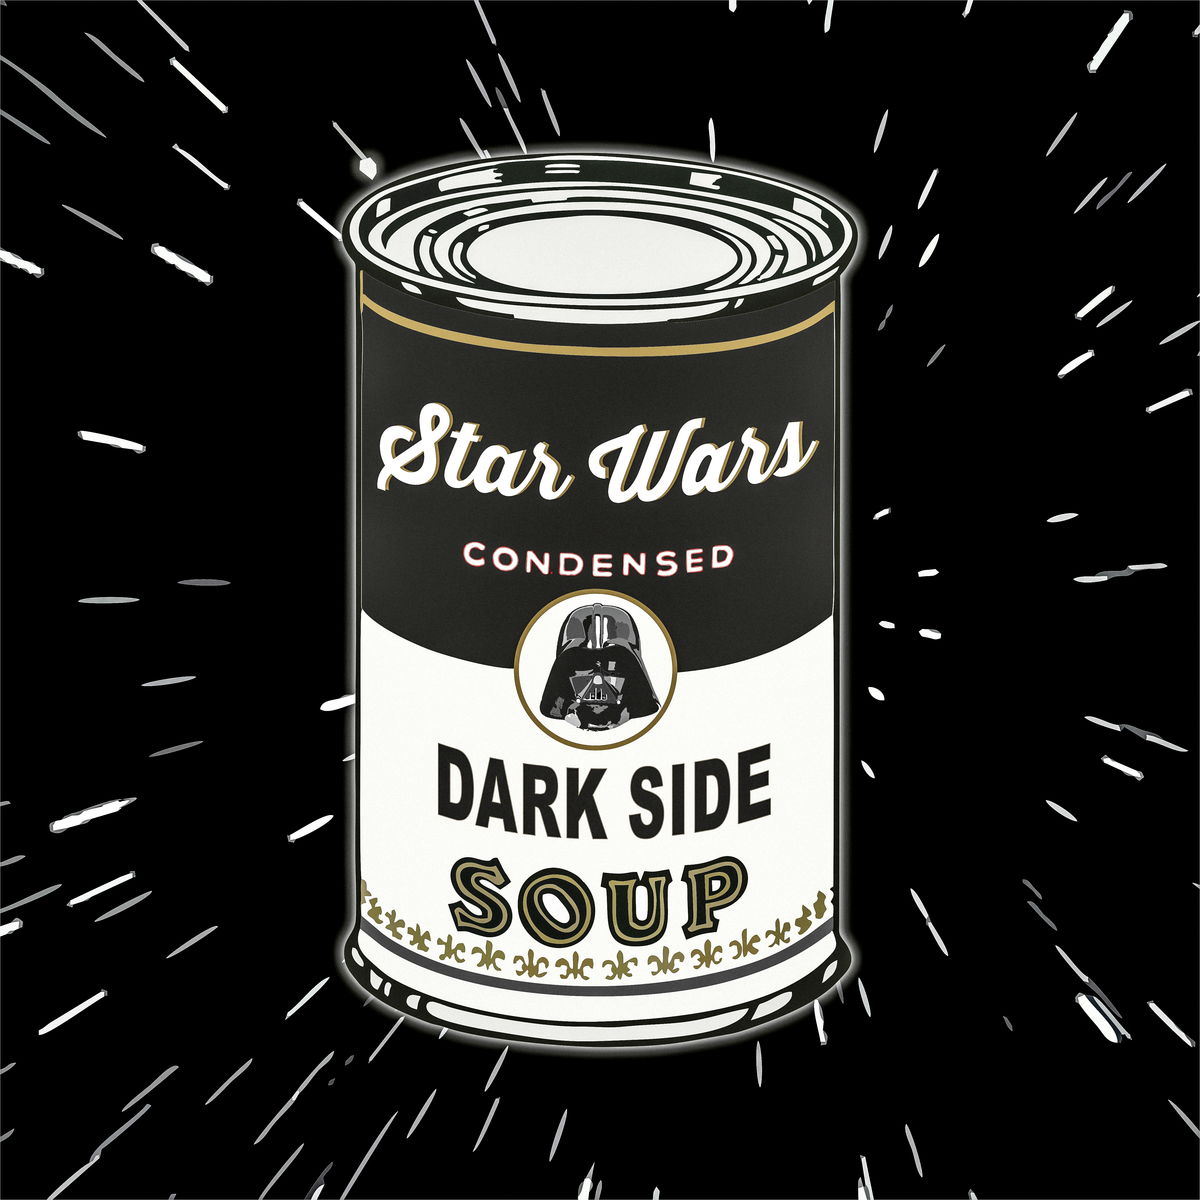 Black Soup. Art Wars. Film Poster Print. Star Wars